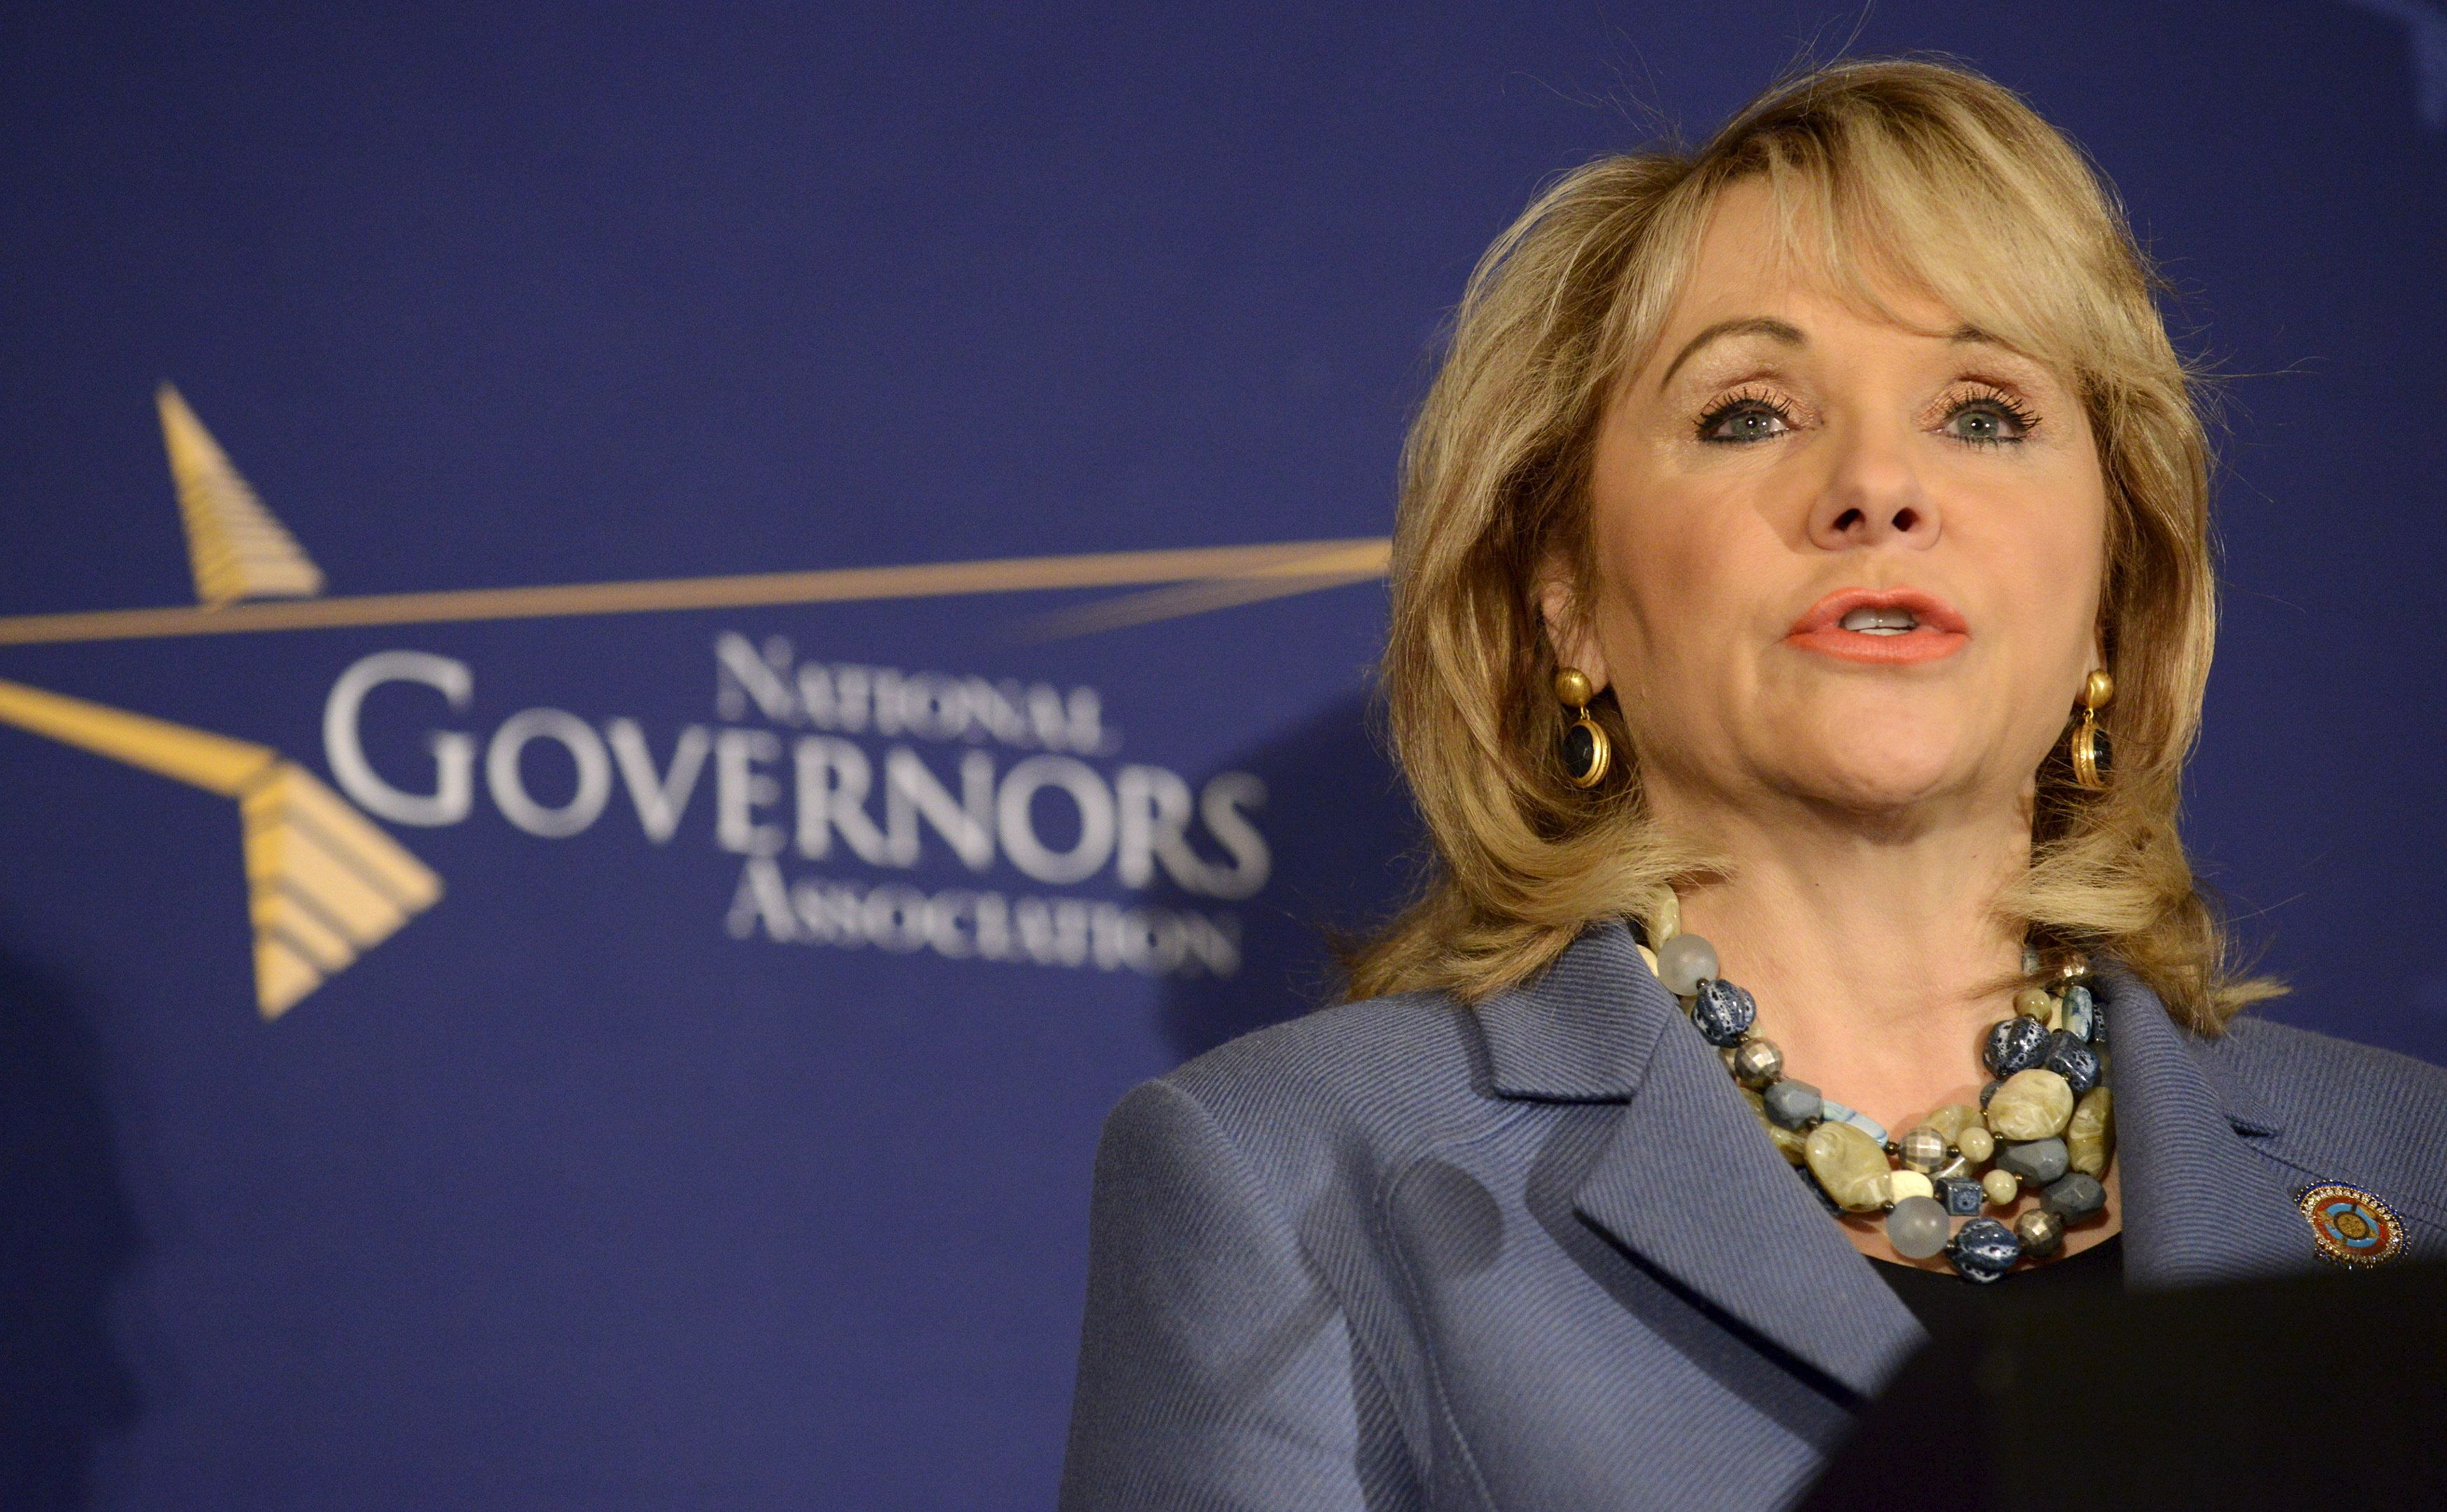 Oklahoma Republican Governor Mary Fallin makes remarks before the opening of the National Governors Association Winter Meeting in Washington, in this February 22, 2014 file photo.  REUTERS/Mike Theiler/Files